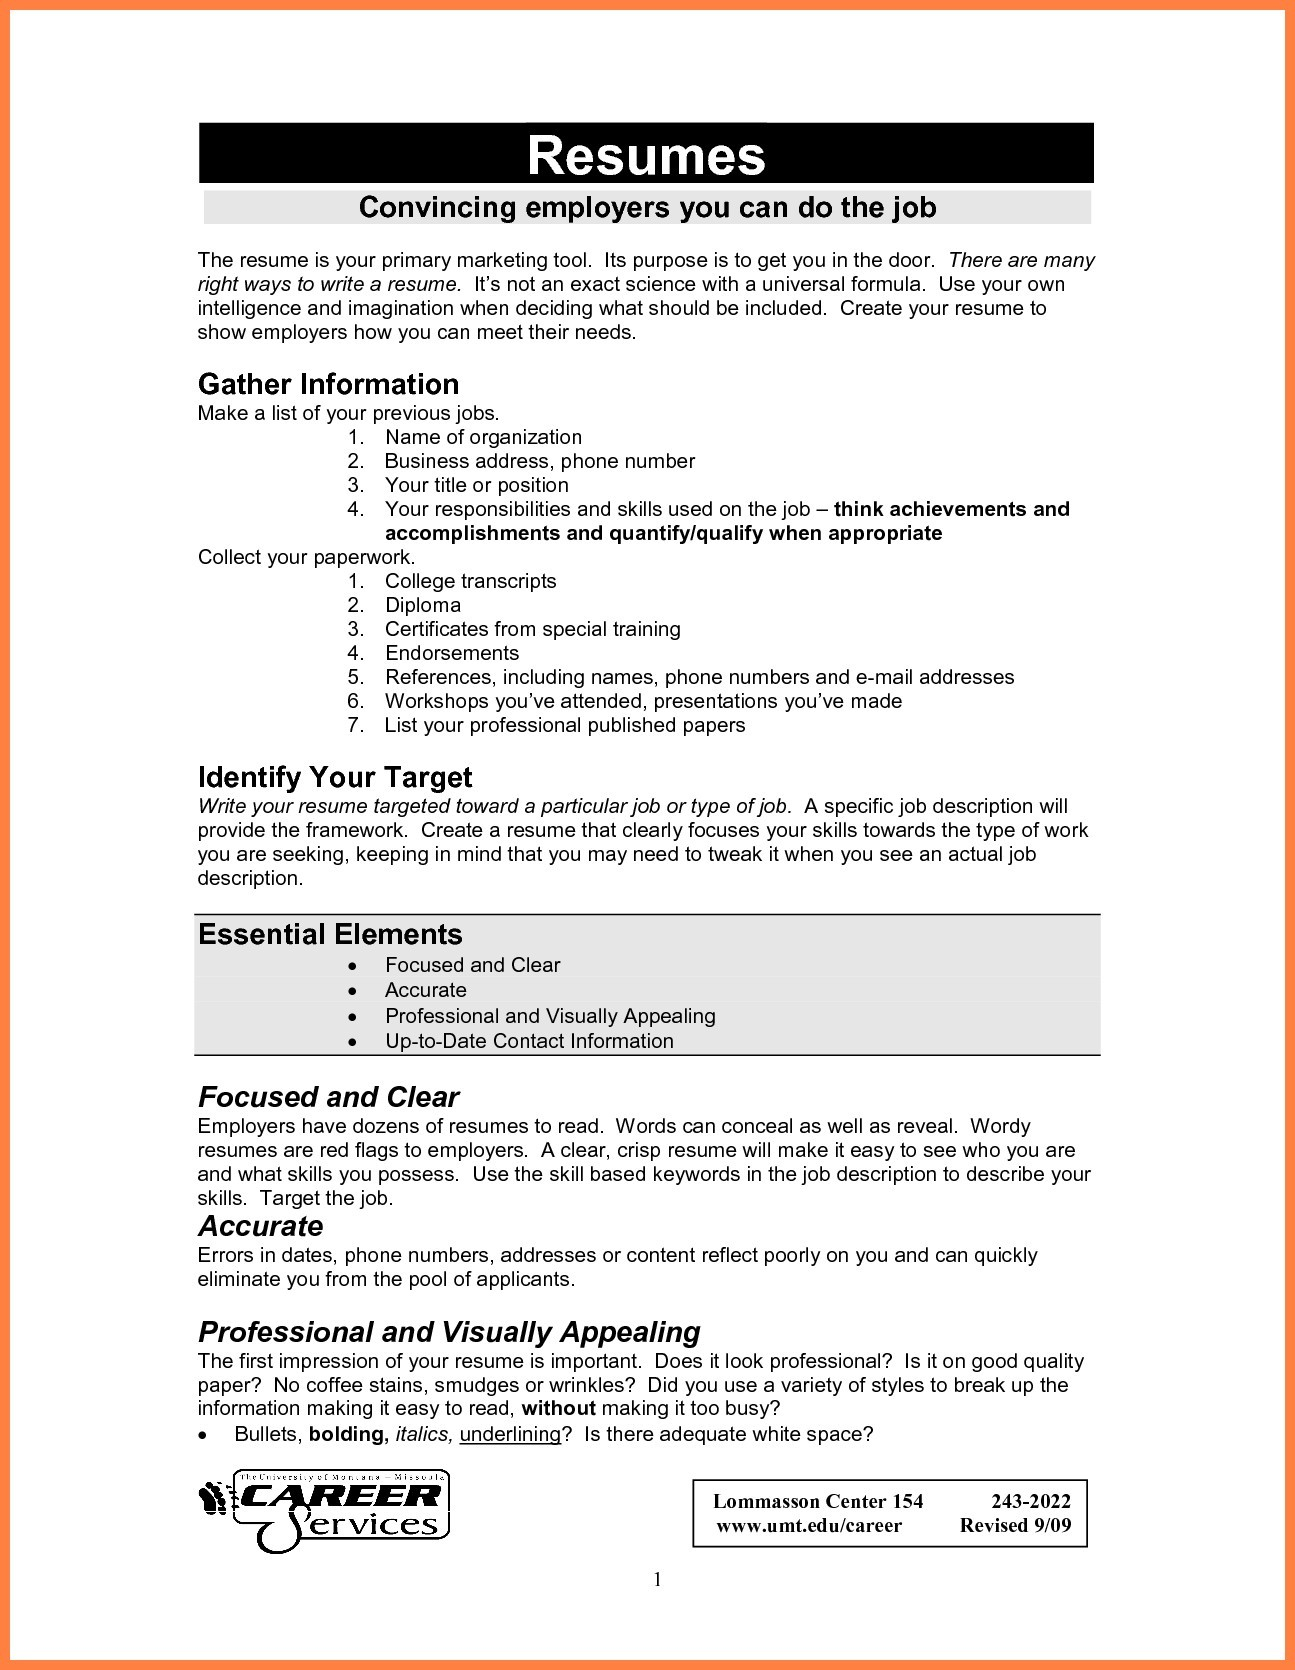 Letter Confirming Employment Free Template - How to Make Resume for Job Beautiful Best Sample College Application